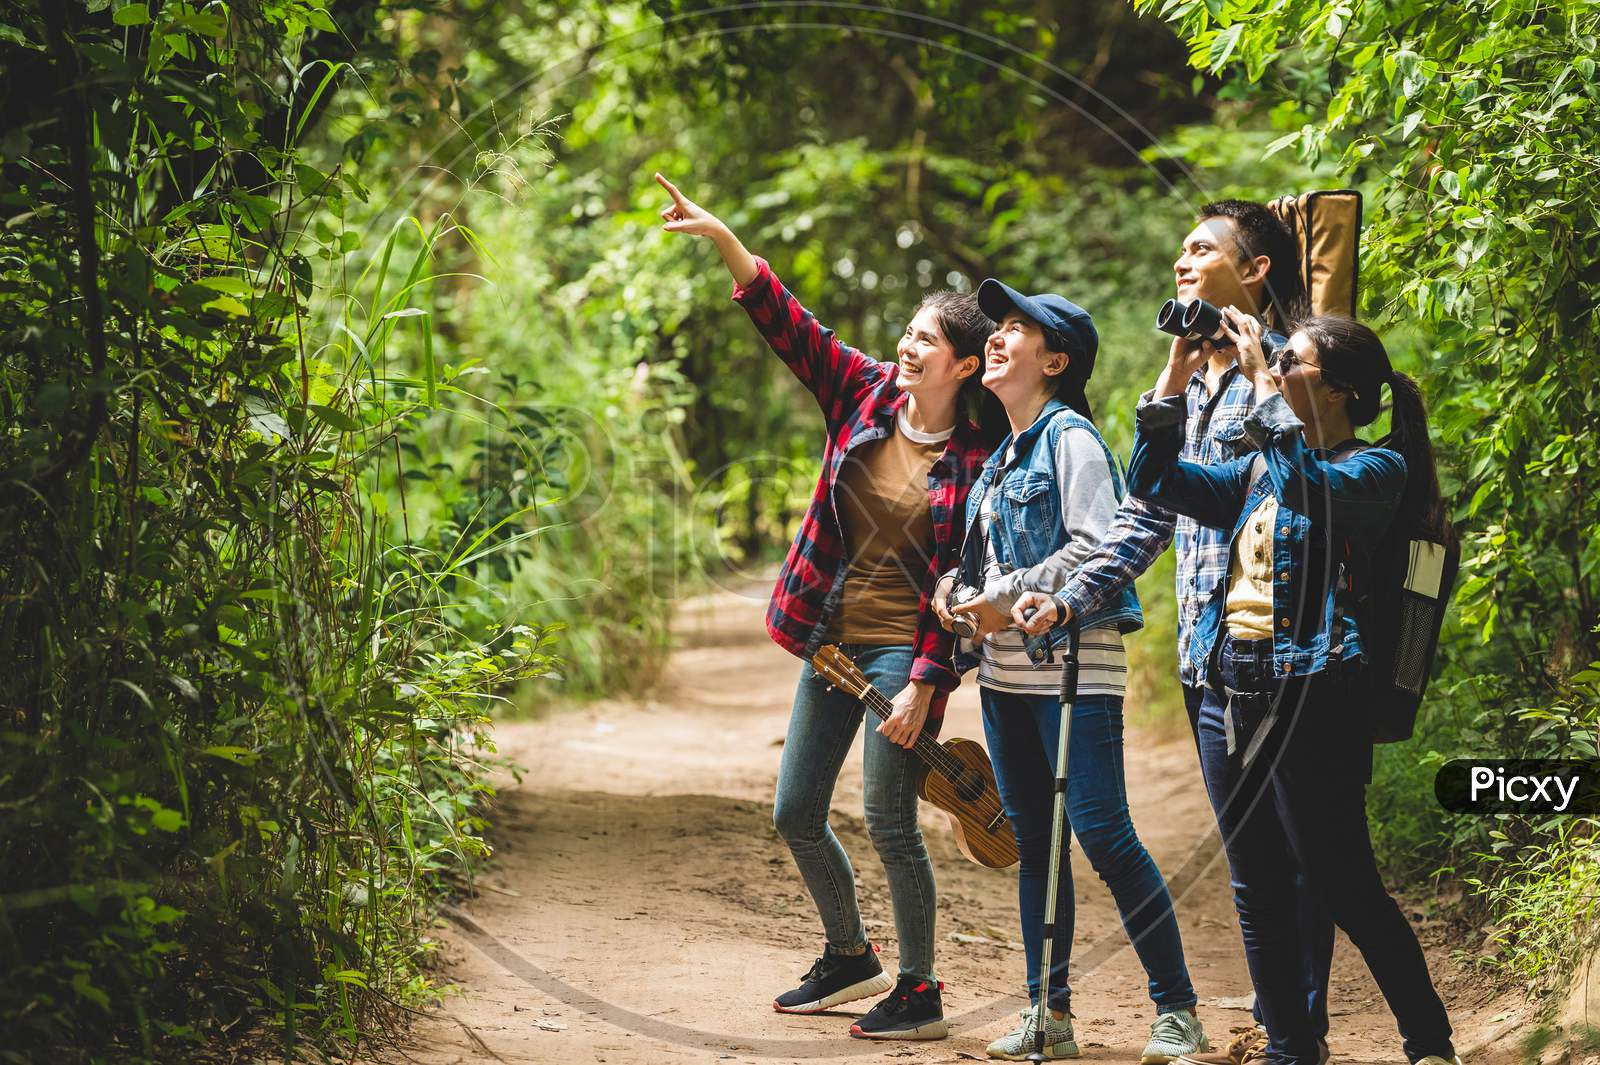 Group Of Asian Friends Team Adventure For Hiking And Camping In Forest Together. Family Travel Relaxation. Trekking And Trail Activity In Wild Life Concept. Woman Pointing At Tree Or Sky. Copy Space